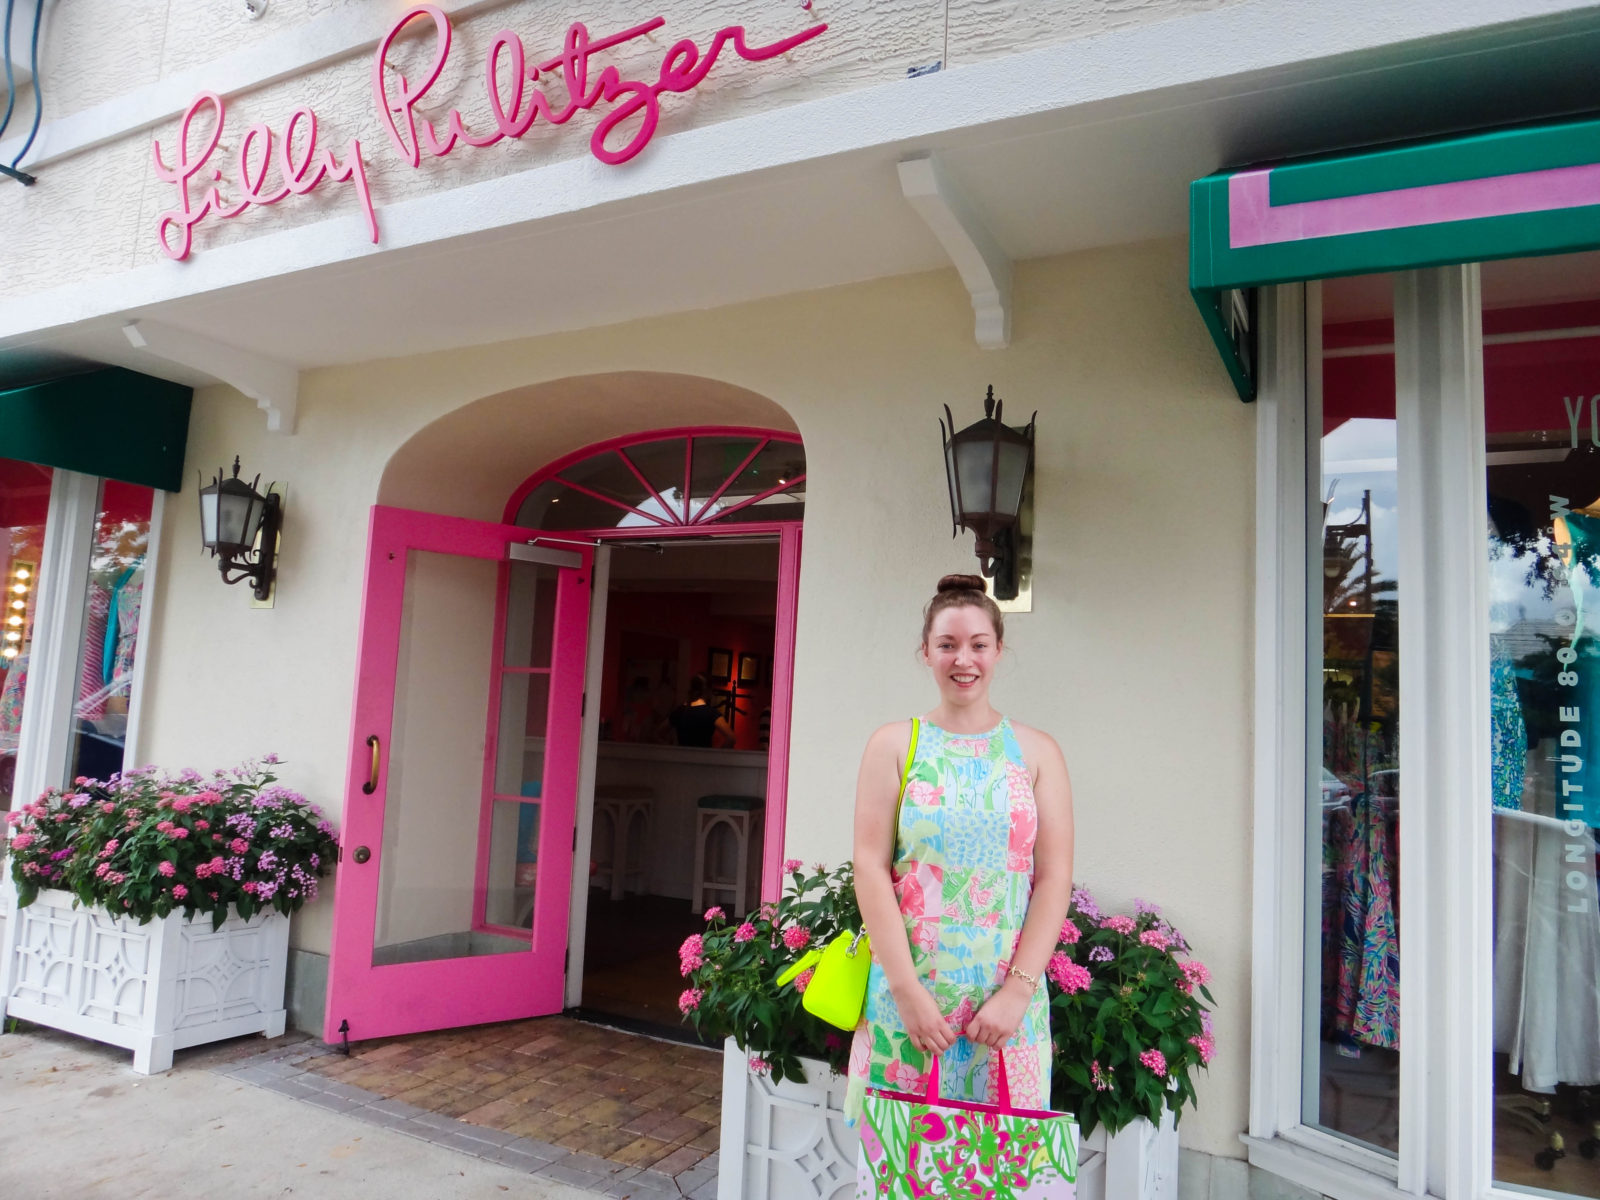 St. Armands Circle Lilly Pulitzer